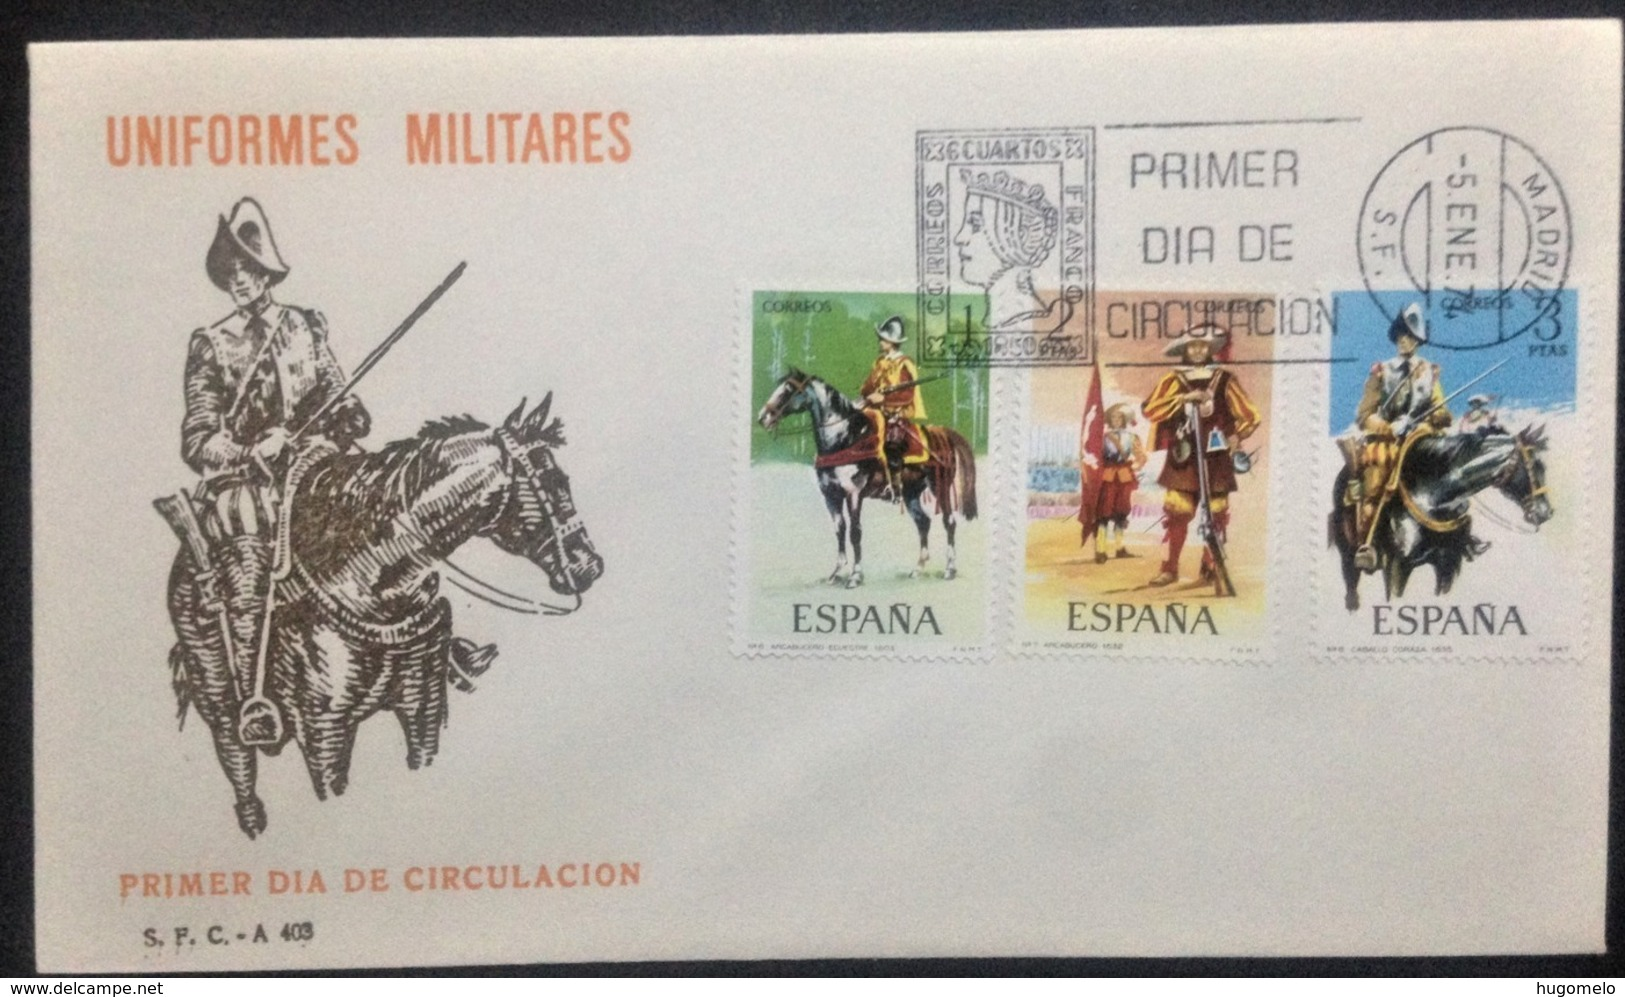 """Netherlands, Uncirculated FDC, """"Militaria"""", """"Military Uniforms"""", """"Horses"""", 1974 - FDC"""